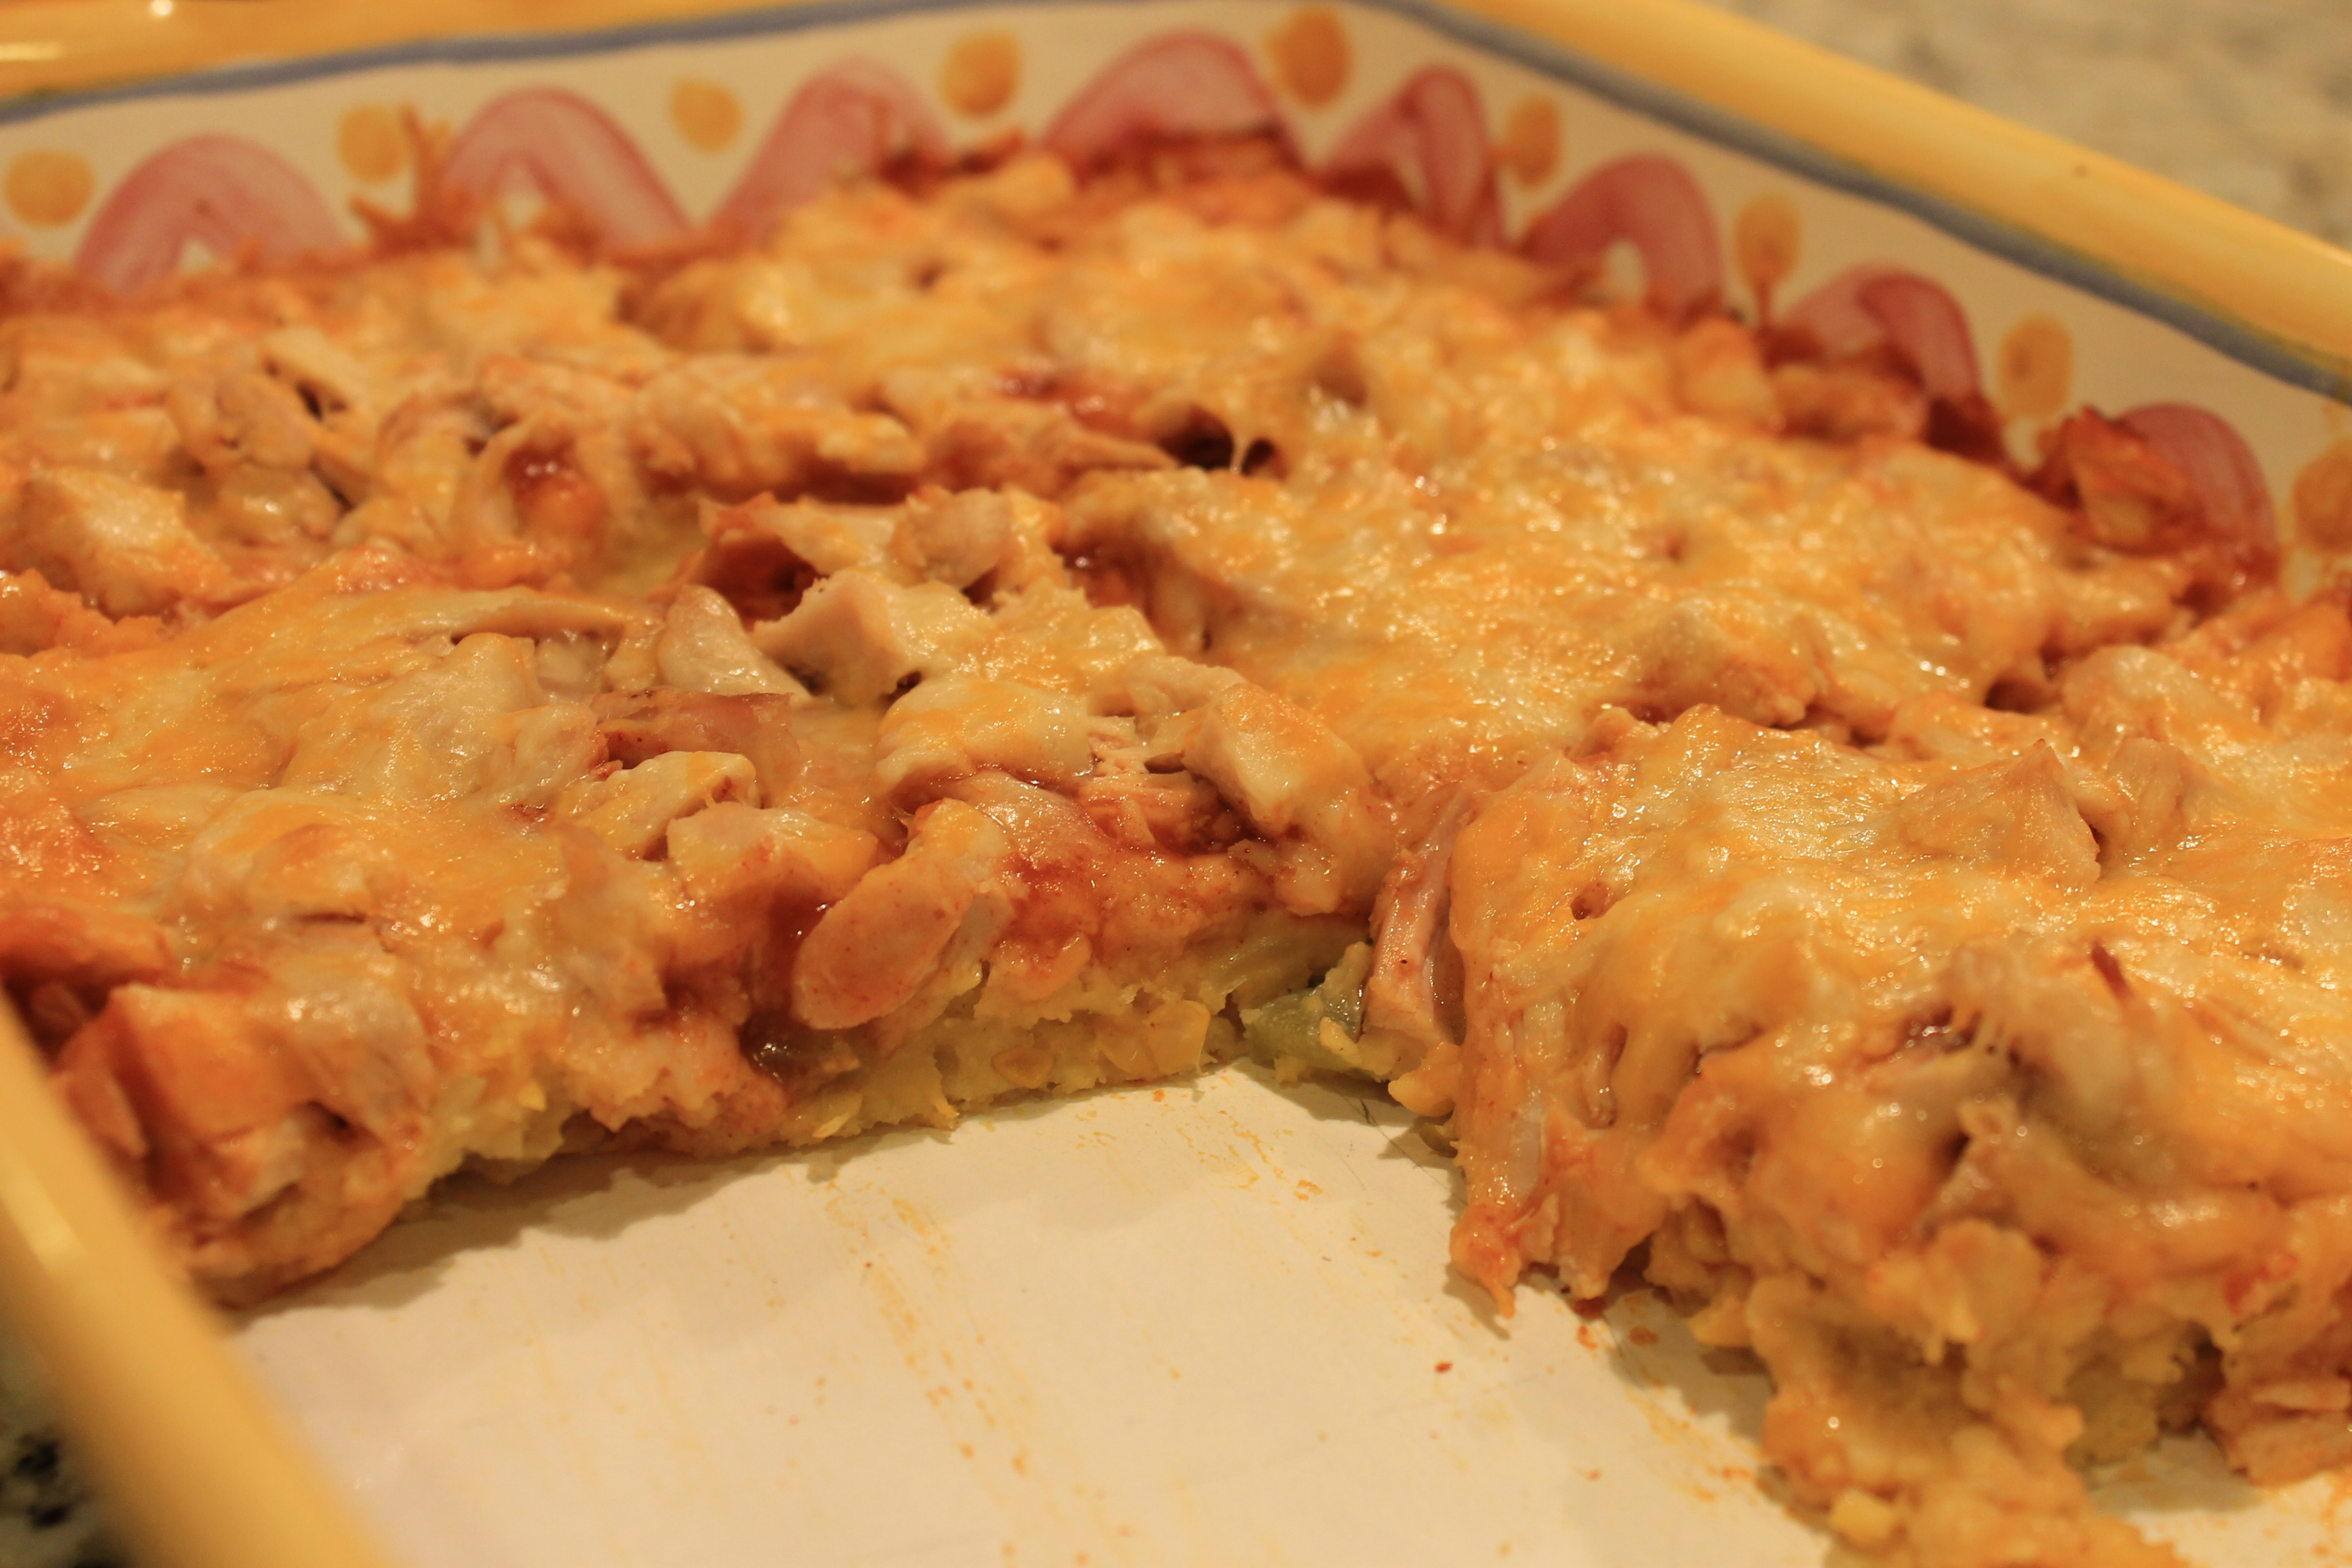 Forum on this topic: Slow Cooker Tamale Pie with Cornbread Crust, slow-cooker-tamale-pie-with-cornbread-crust/